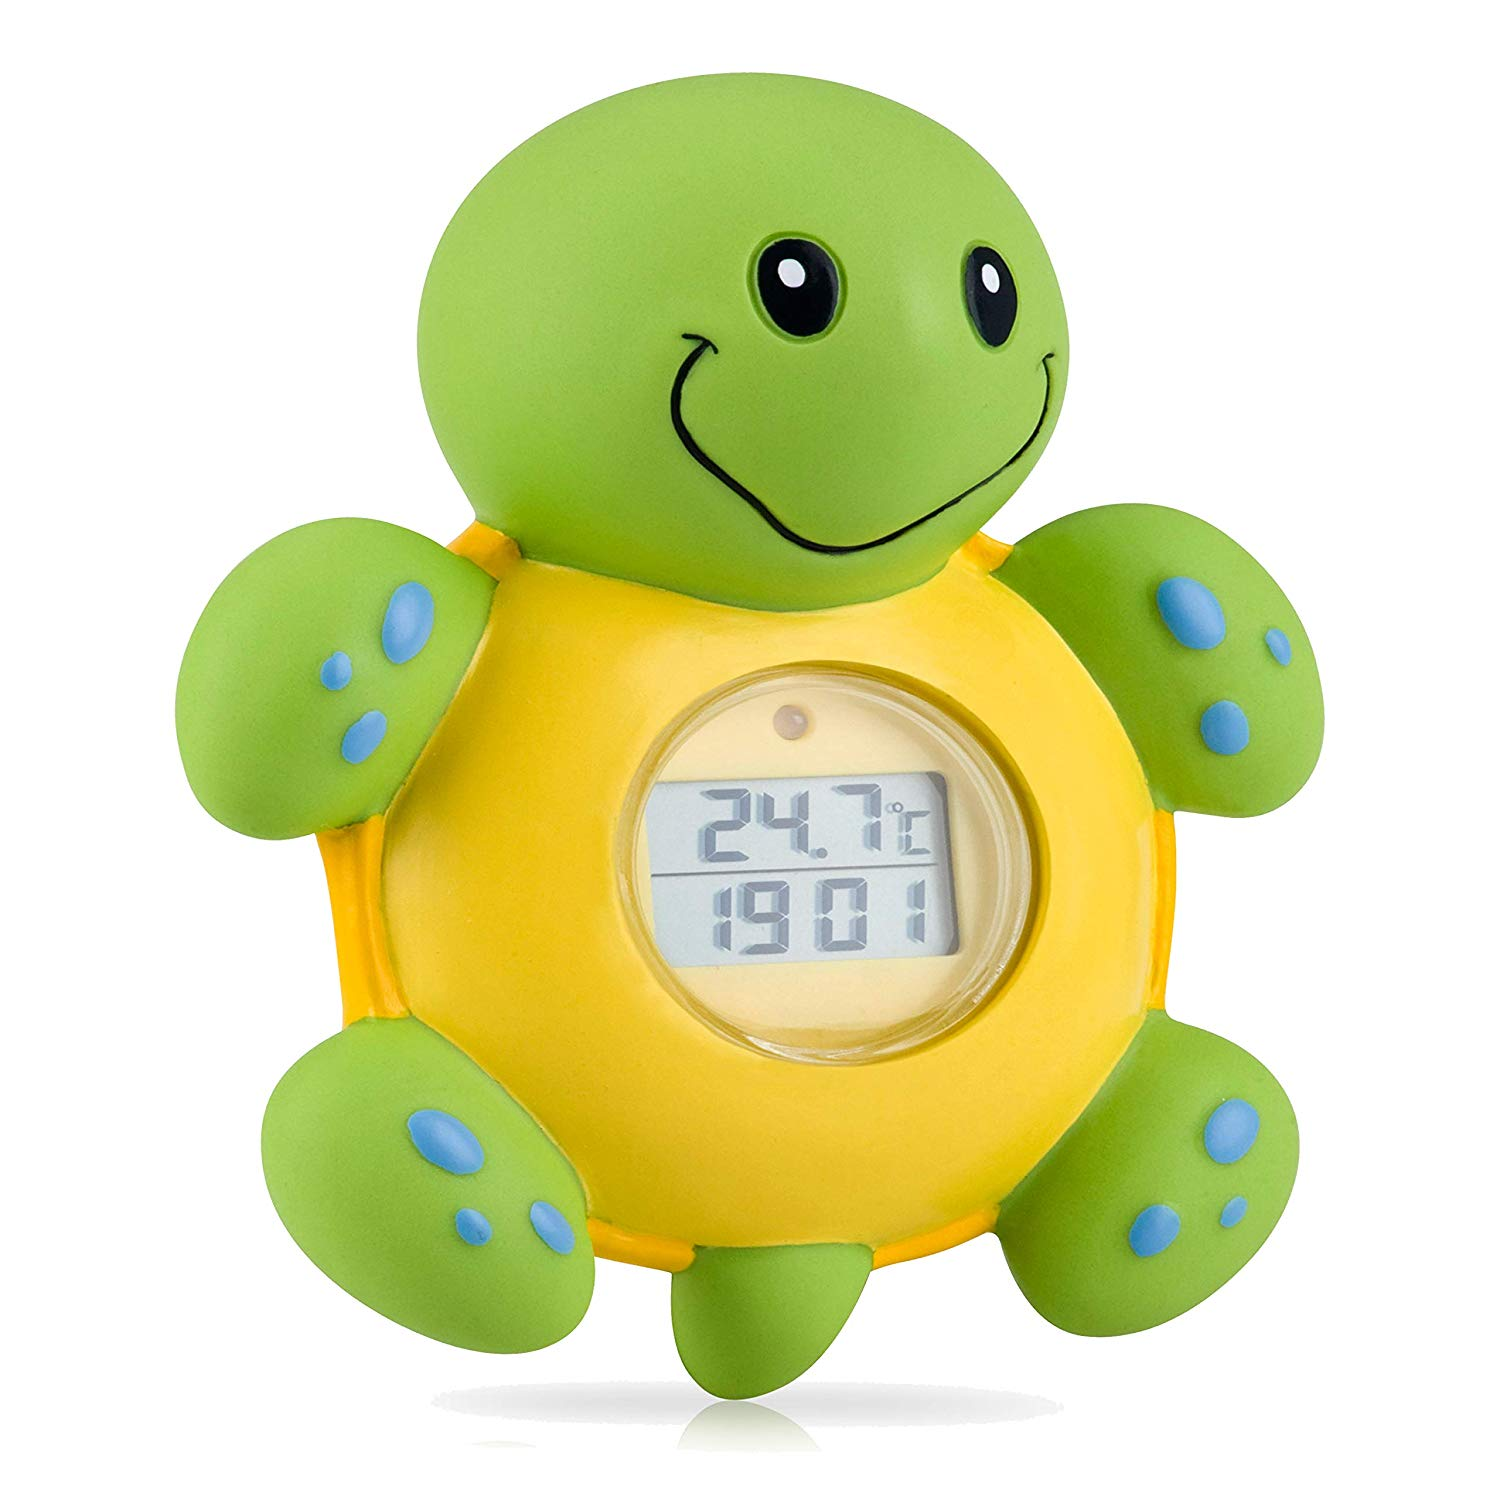 Nuby Turtle Bath Thermometer and Clock